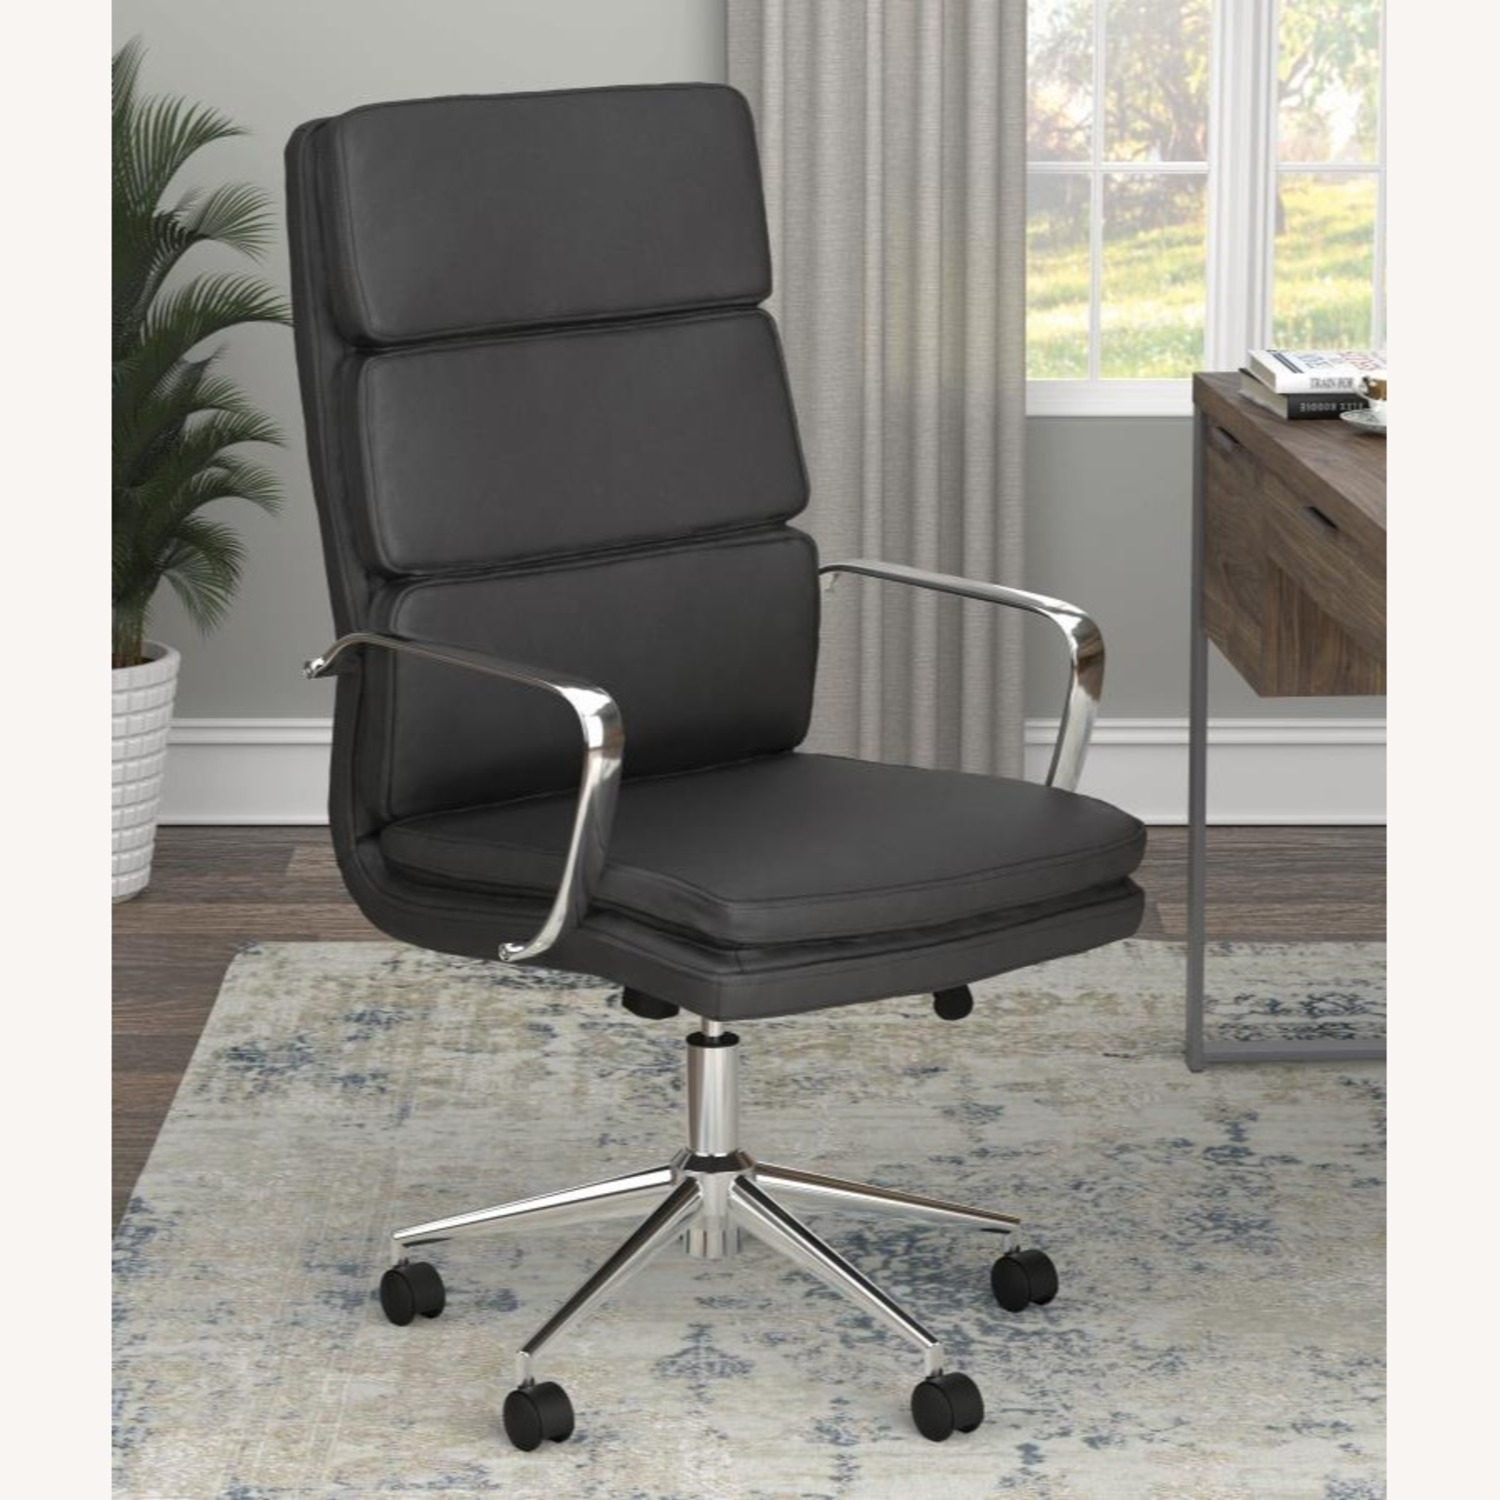 Office Chair In Black Cushion Leatherette Finish - image-6